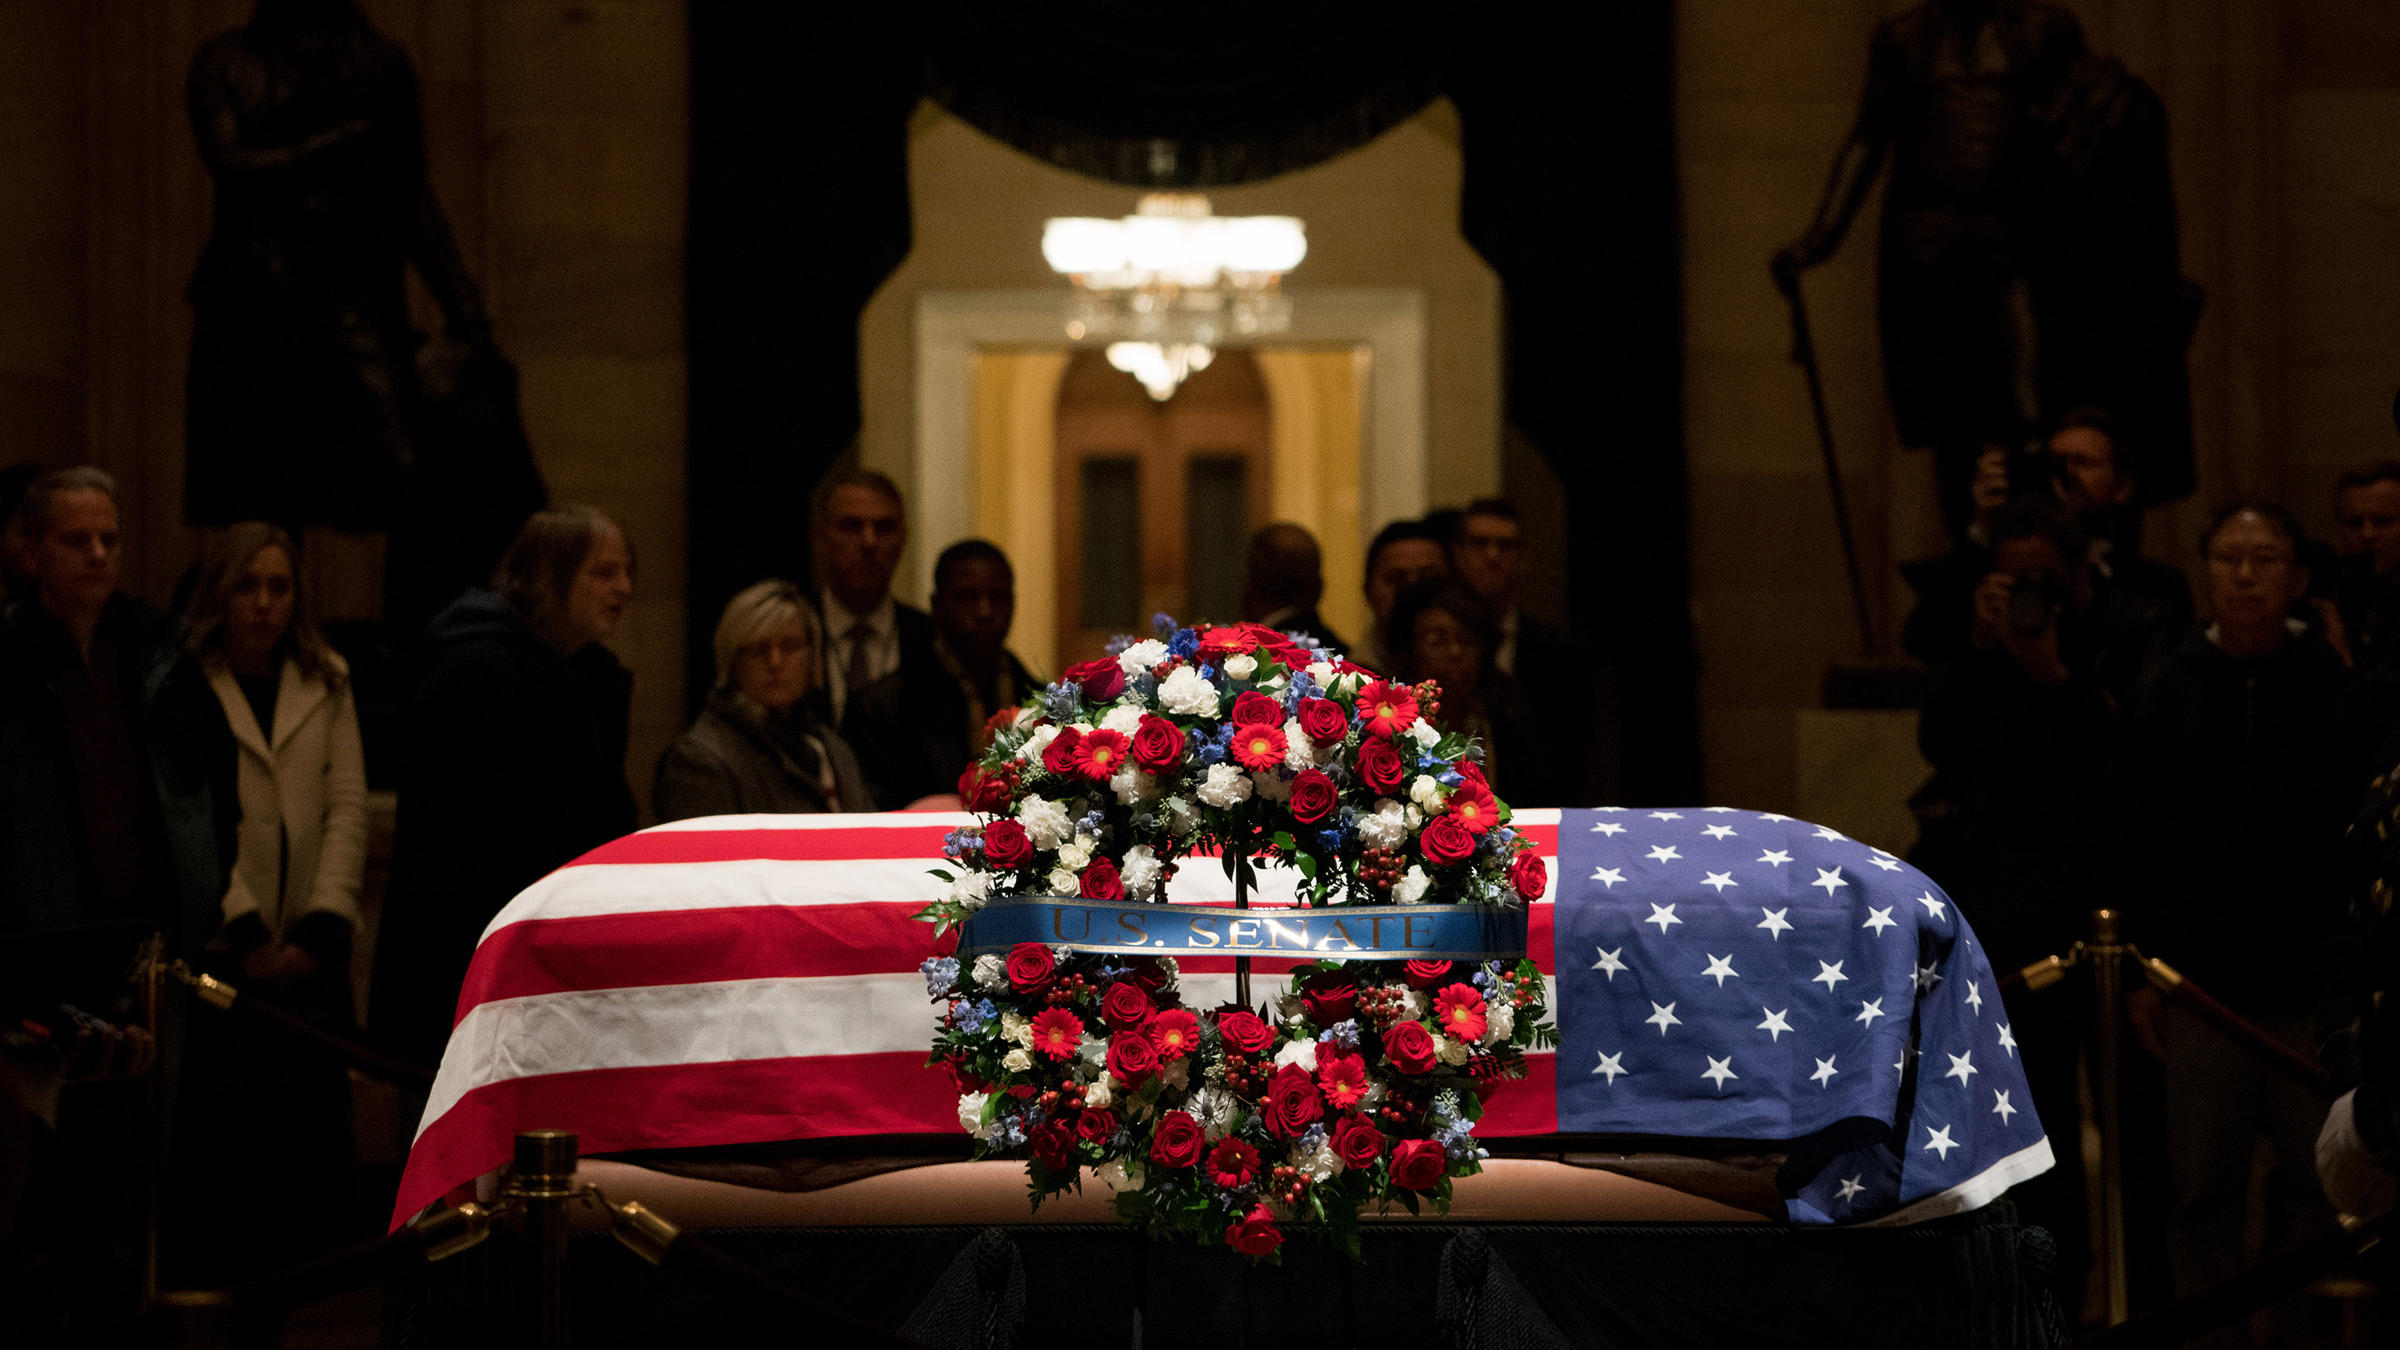 Former President George H.W. Bush's remains lie in state in the U.S. Capitol Rotunda